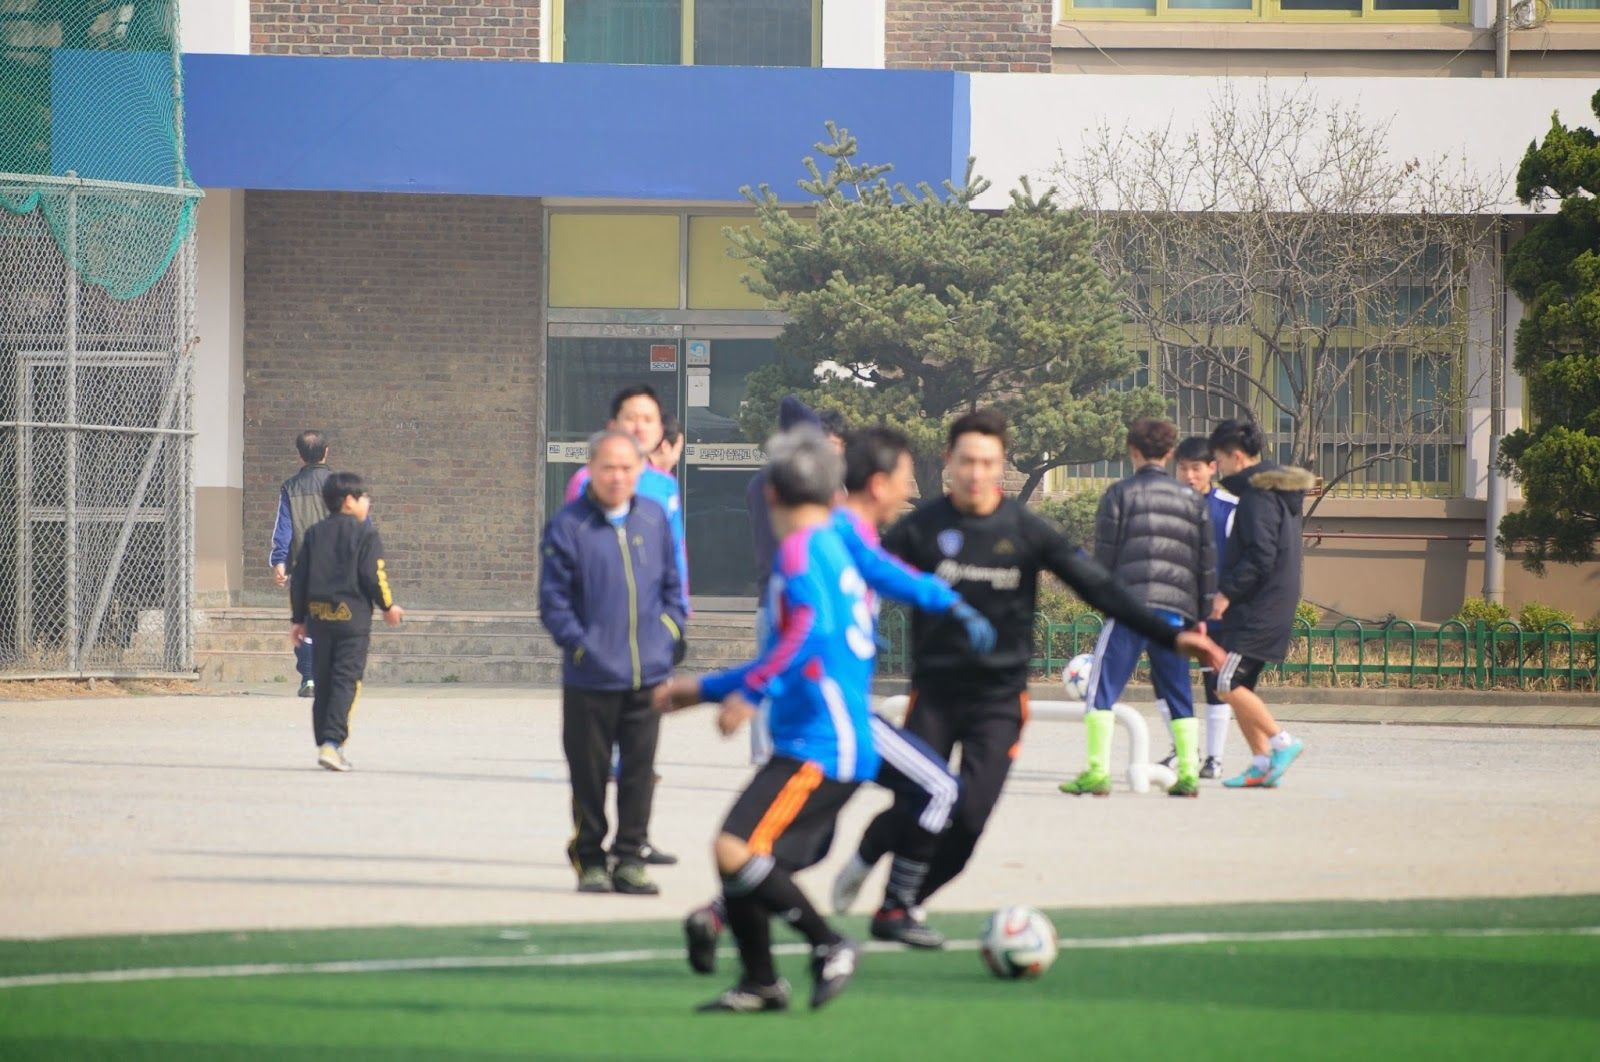 구글블로그 쌍둥이엄마: Friends Celebrity soccer friendly match scenes vid...